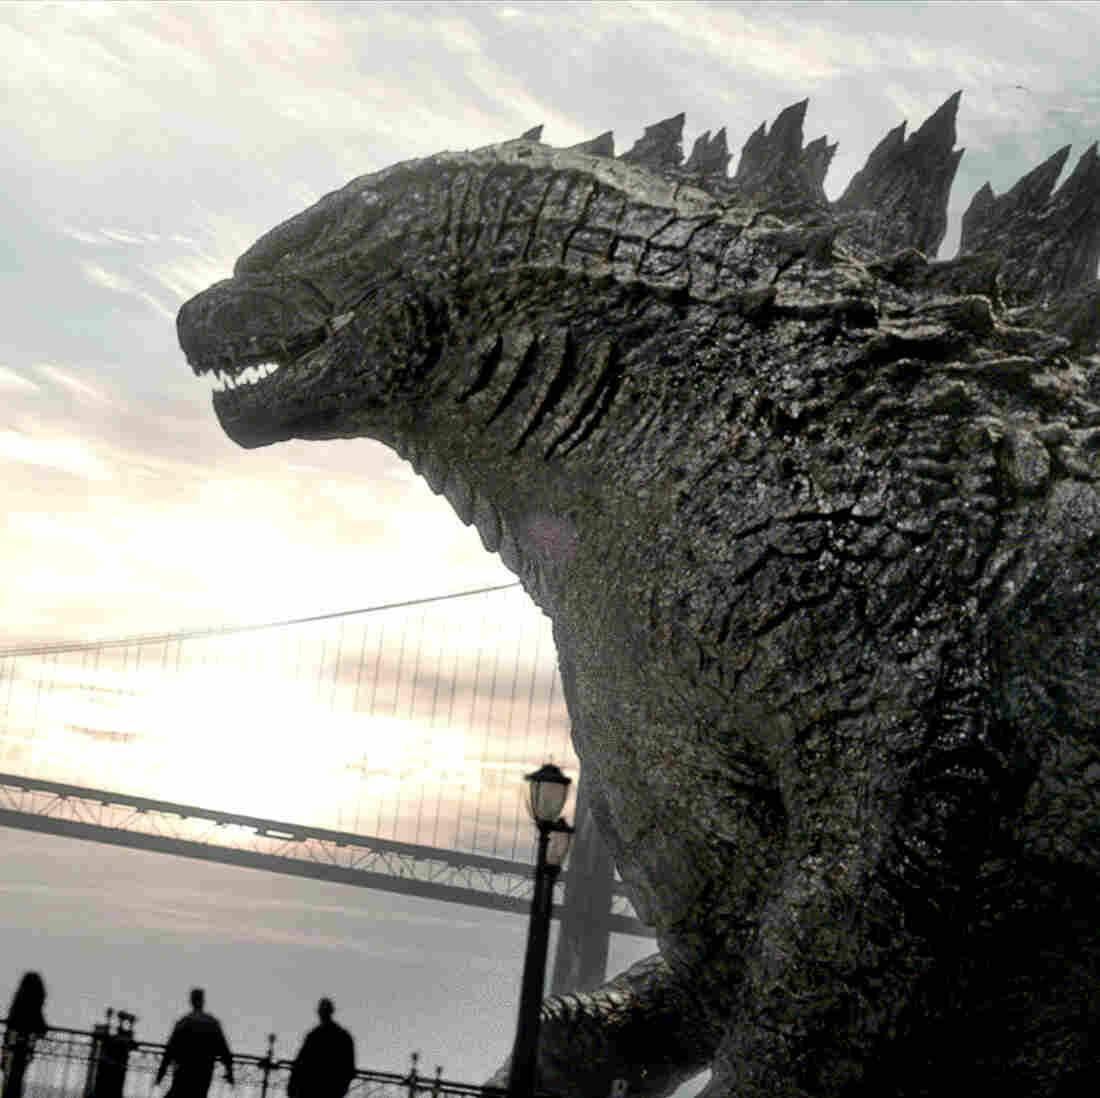 Son Of? Bride Of? Cousin Of? How Many Godzillas Are There, Already?